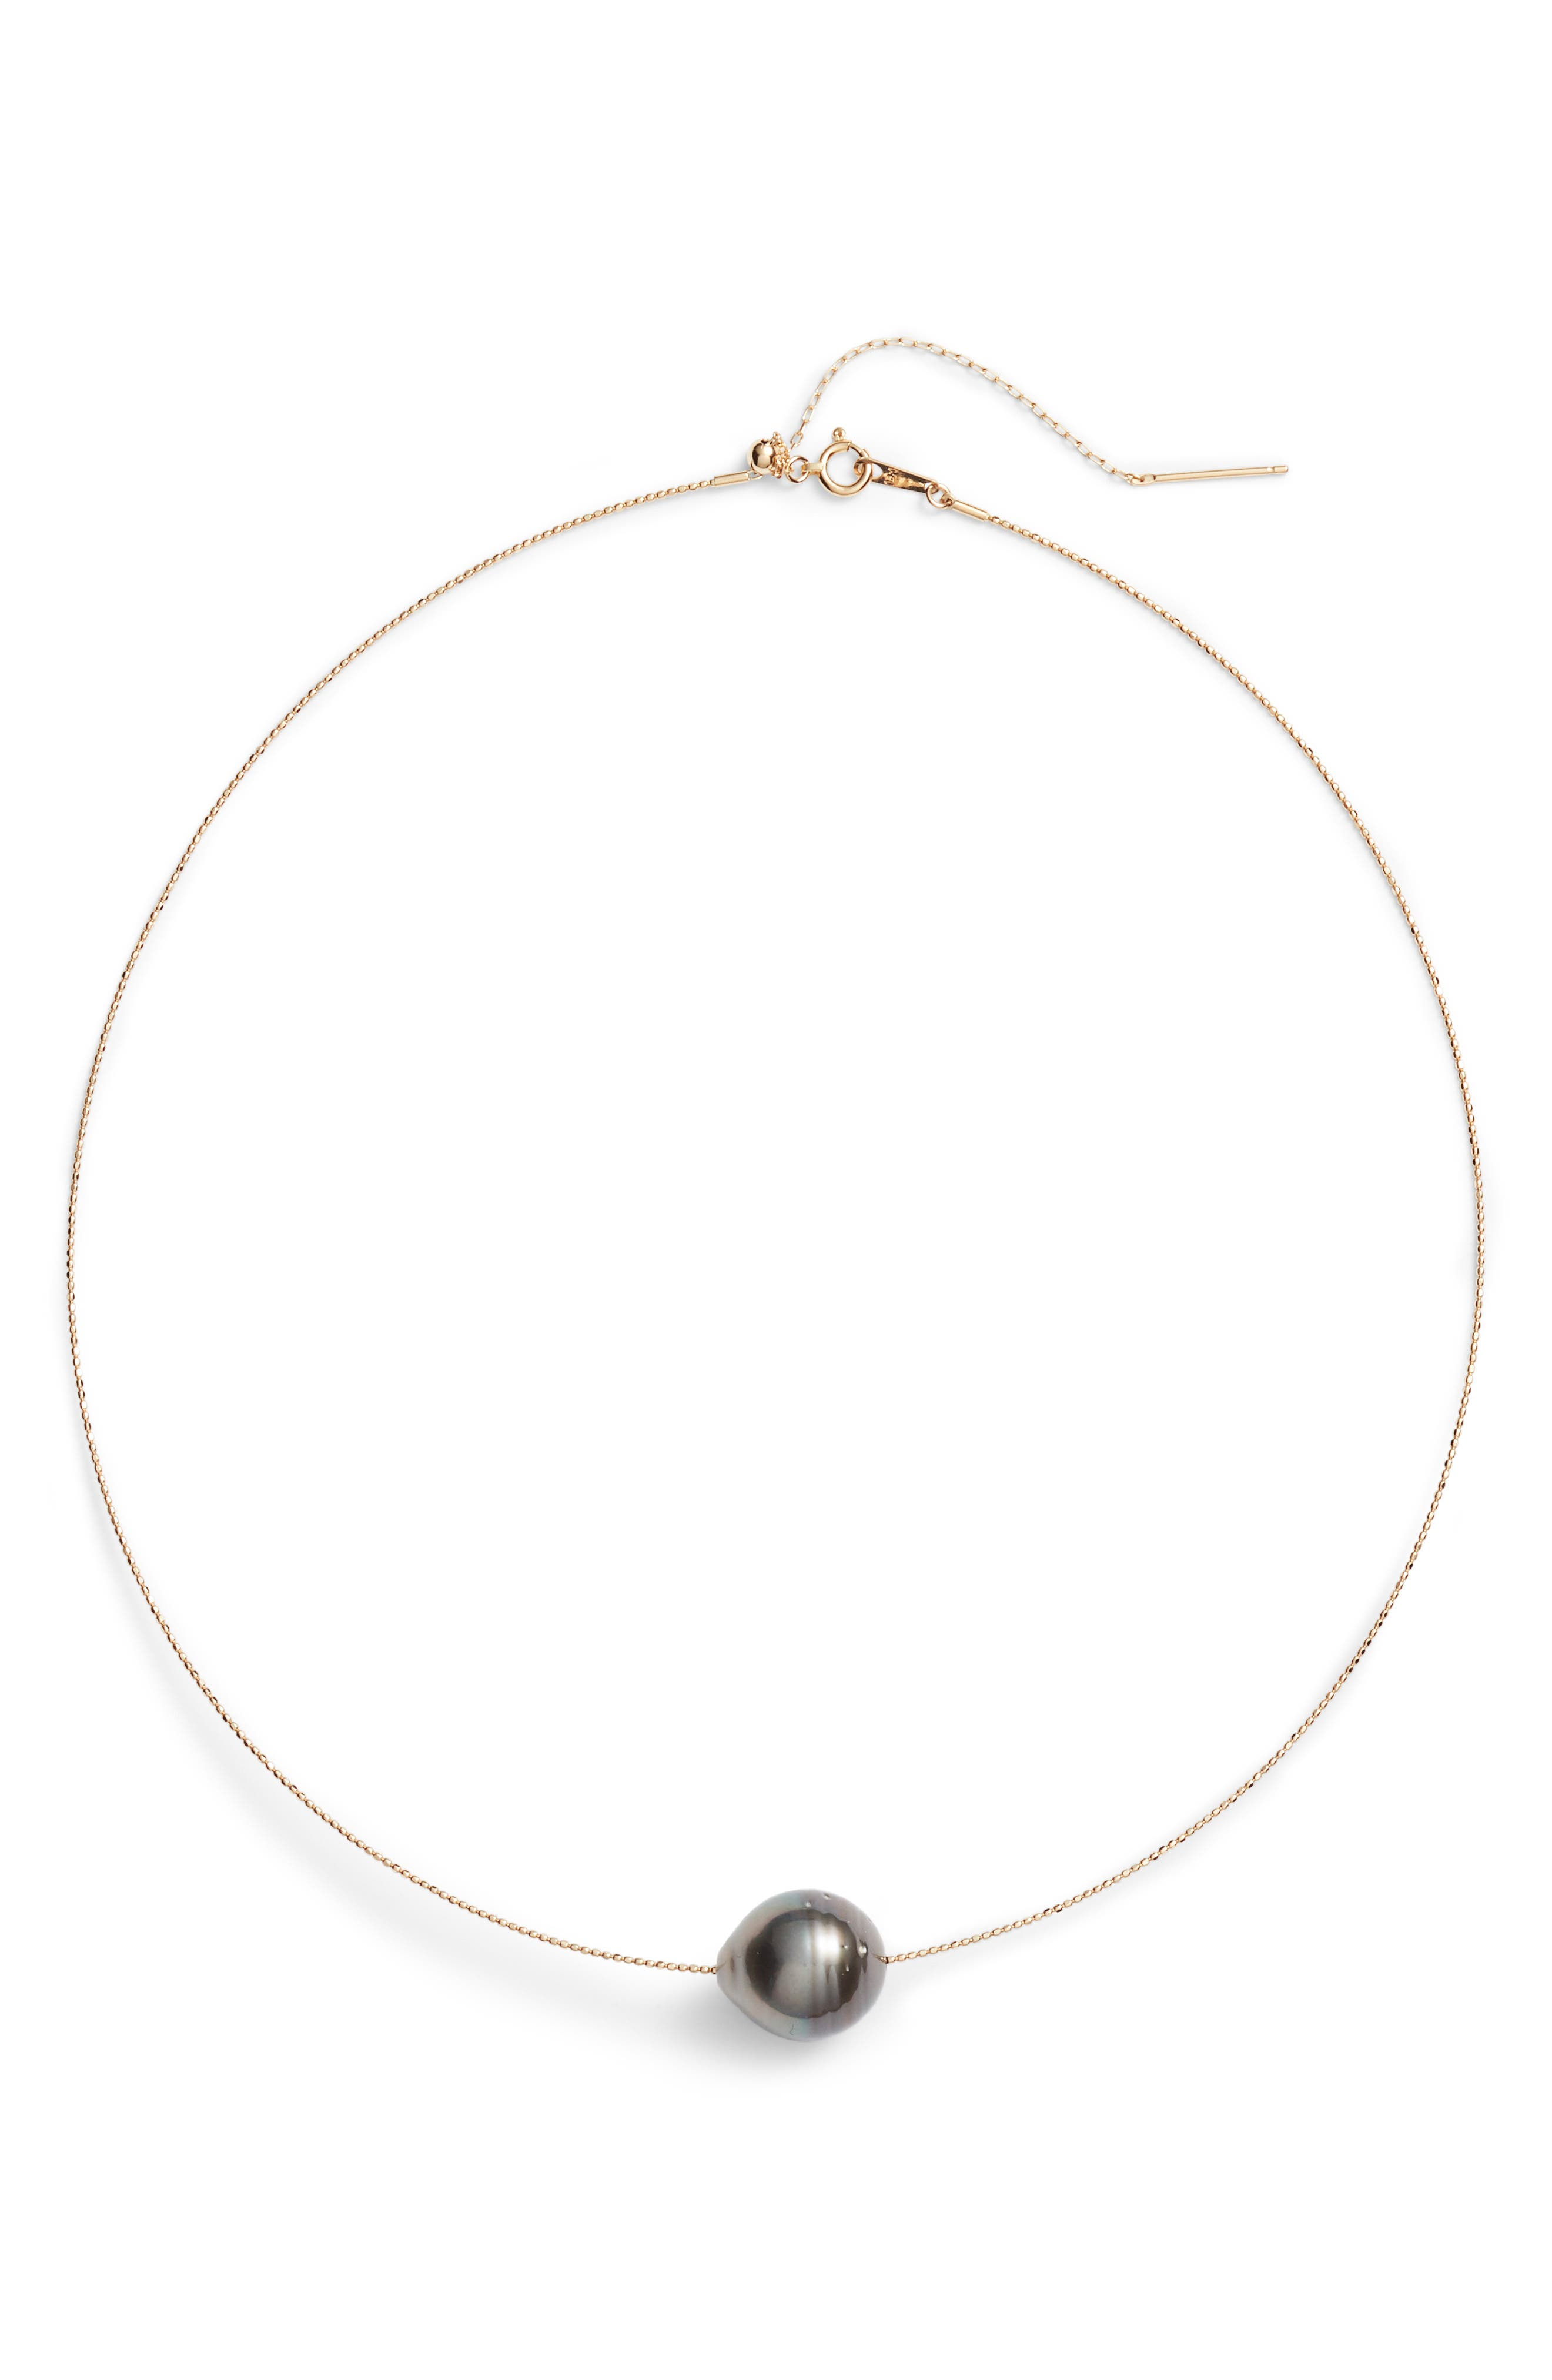 Poppy Finch South Sea Collar Necklace with Genuine Pearl